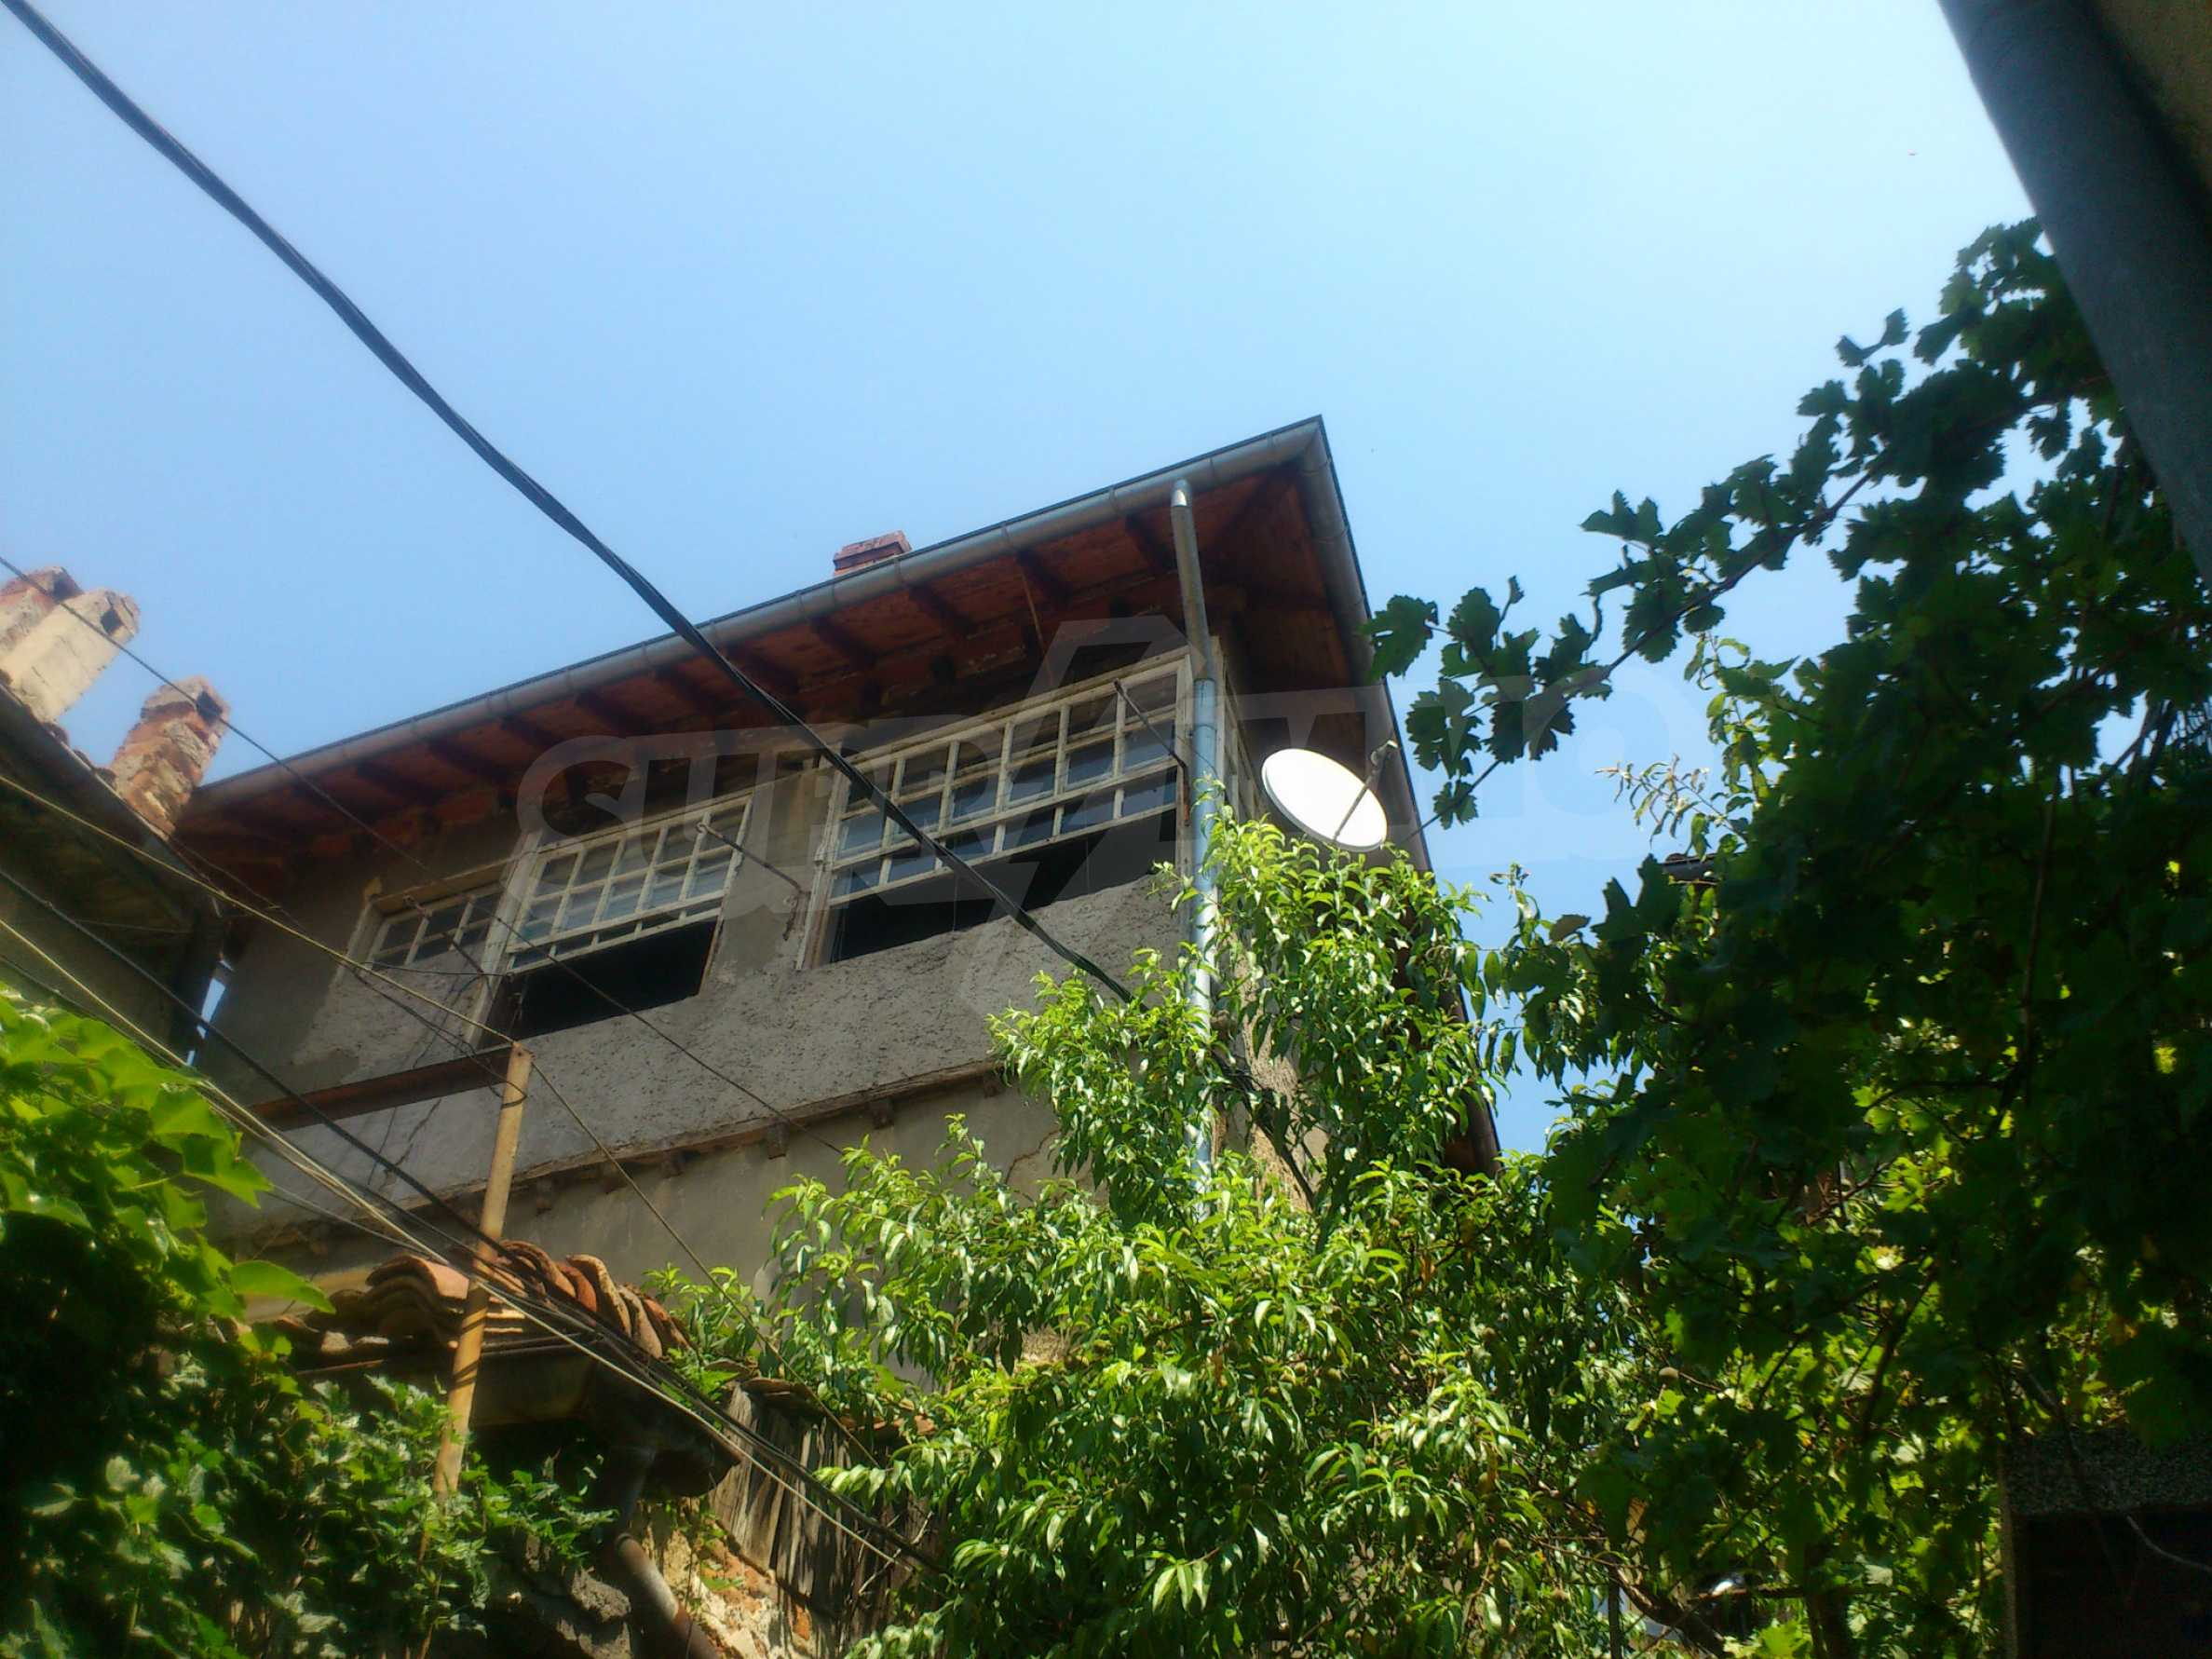 Traditional, spacious house located in the old part of Veliko Tarnovo 38